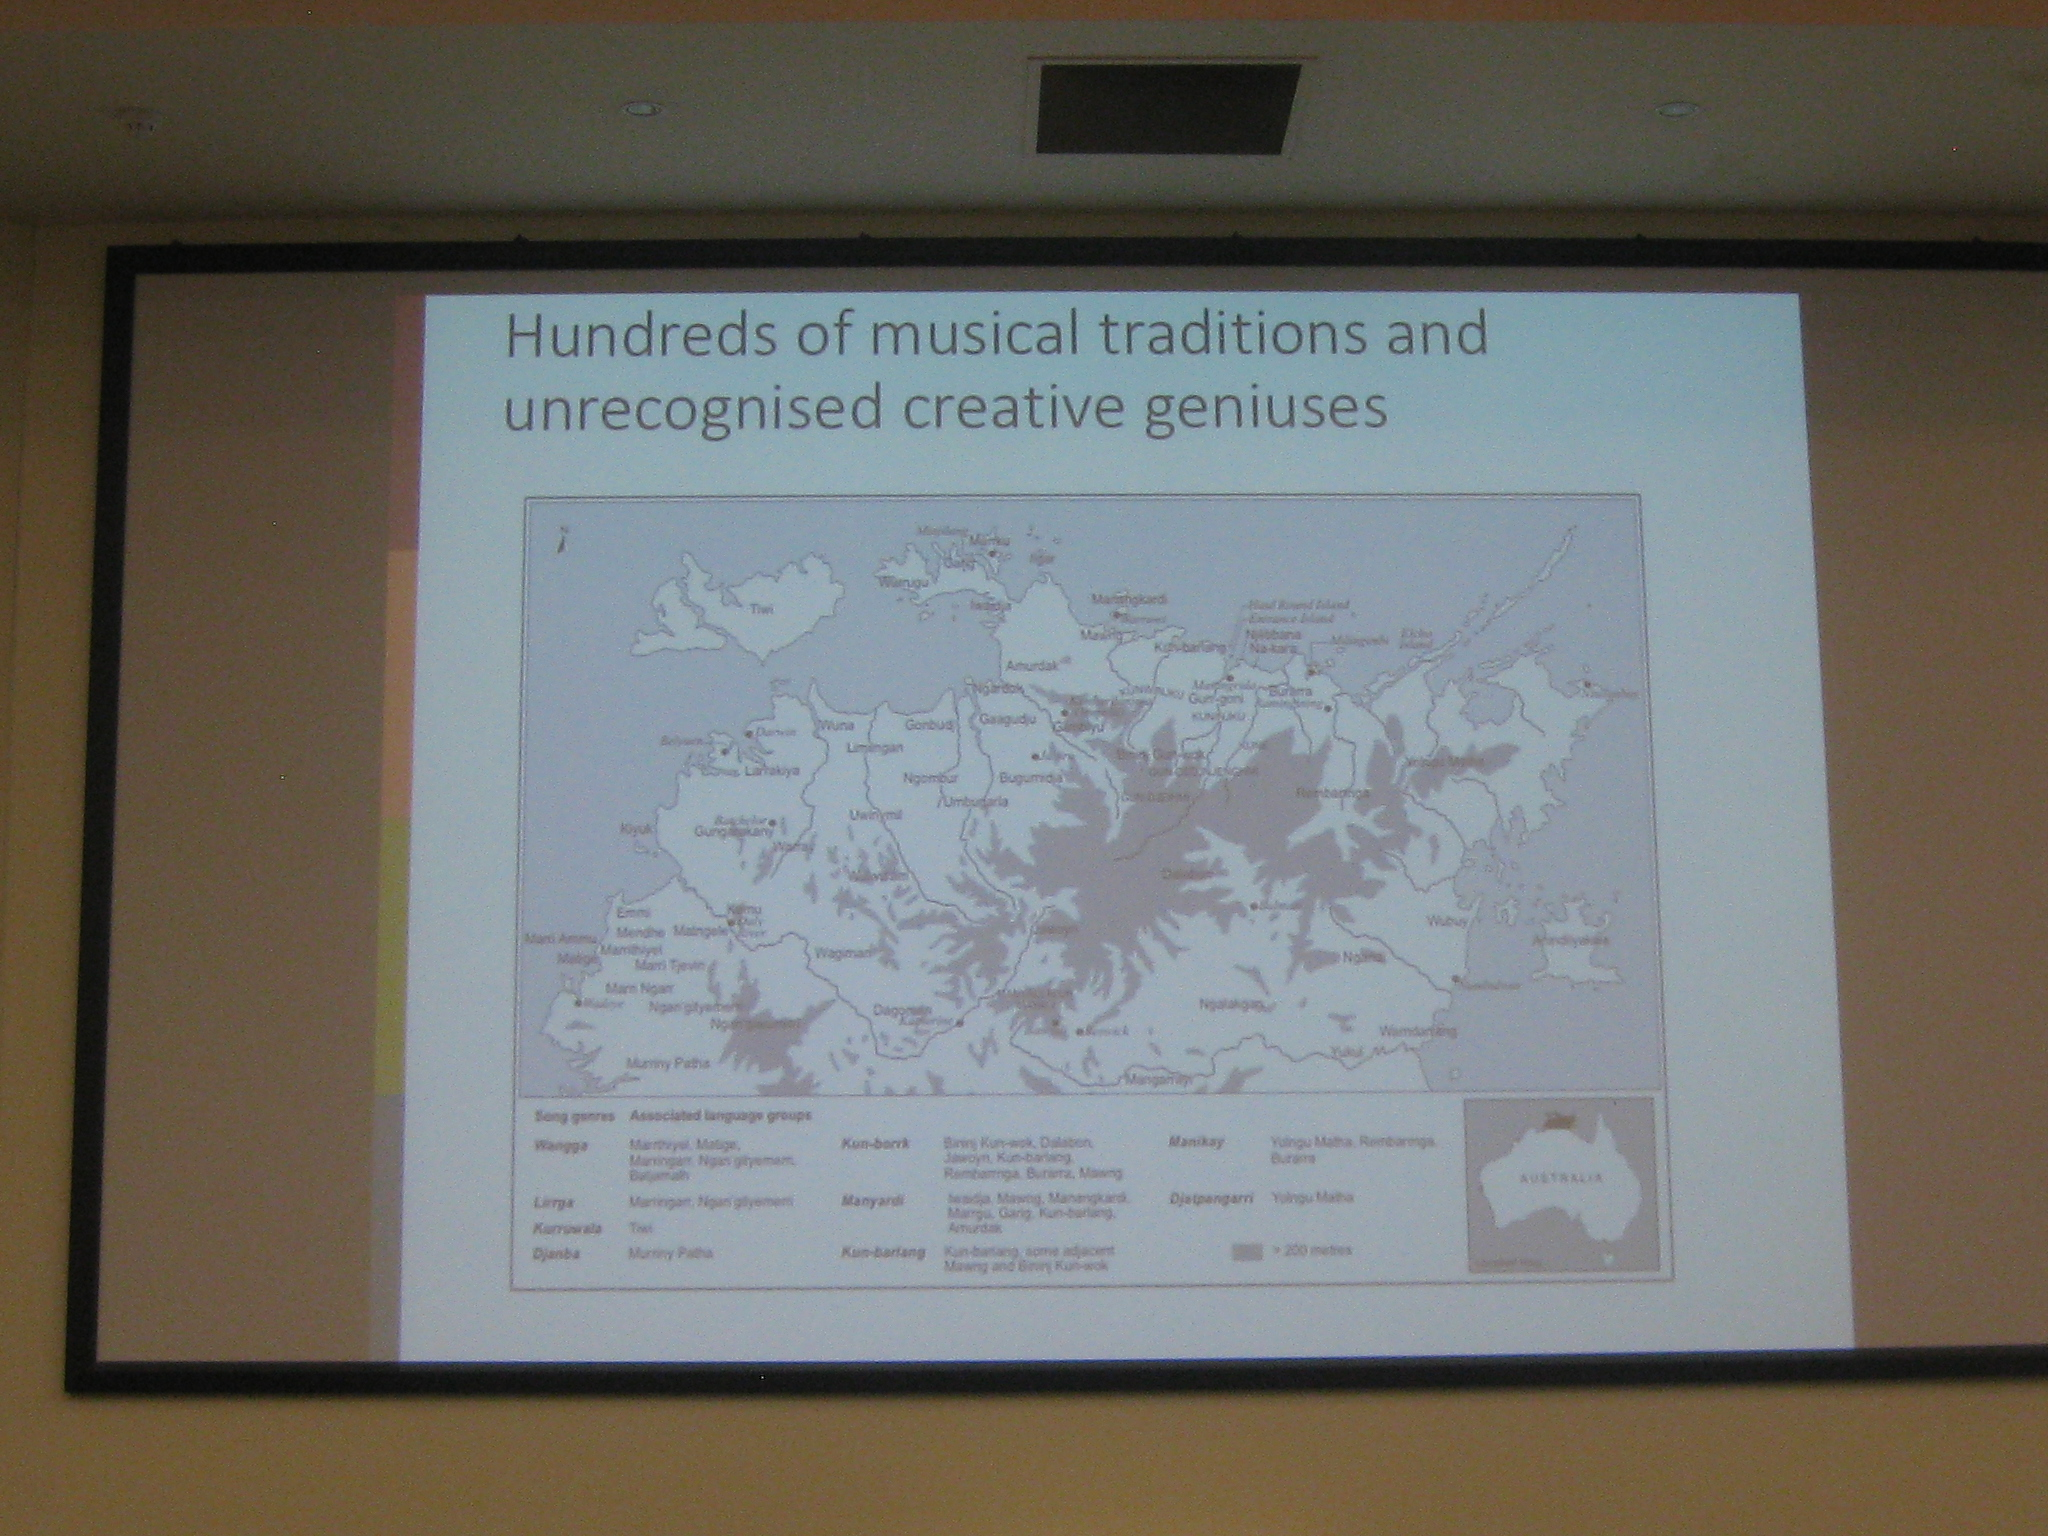 map Waving to the other side: language of poetry in indigenous Australian song Nick Evans University of Melbourne 2018 indigenous genius aboriginal musical traditions and creative geniuses